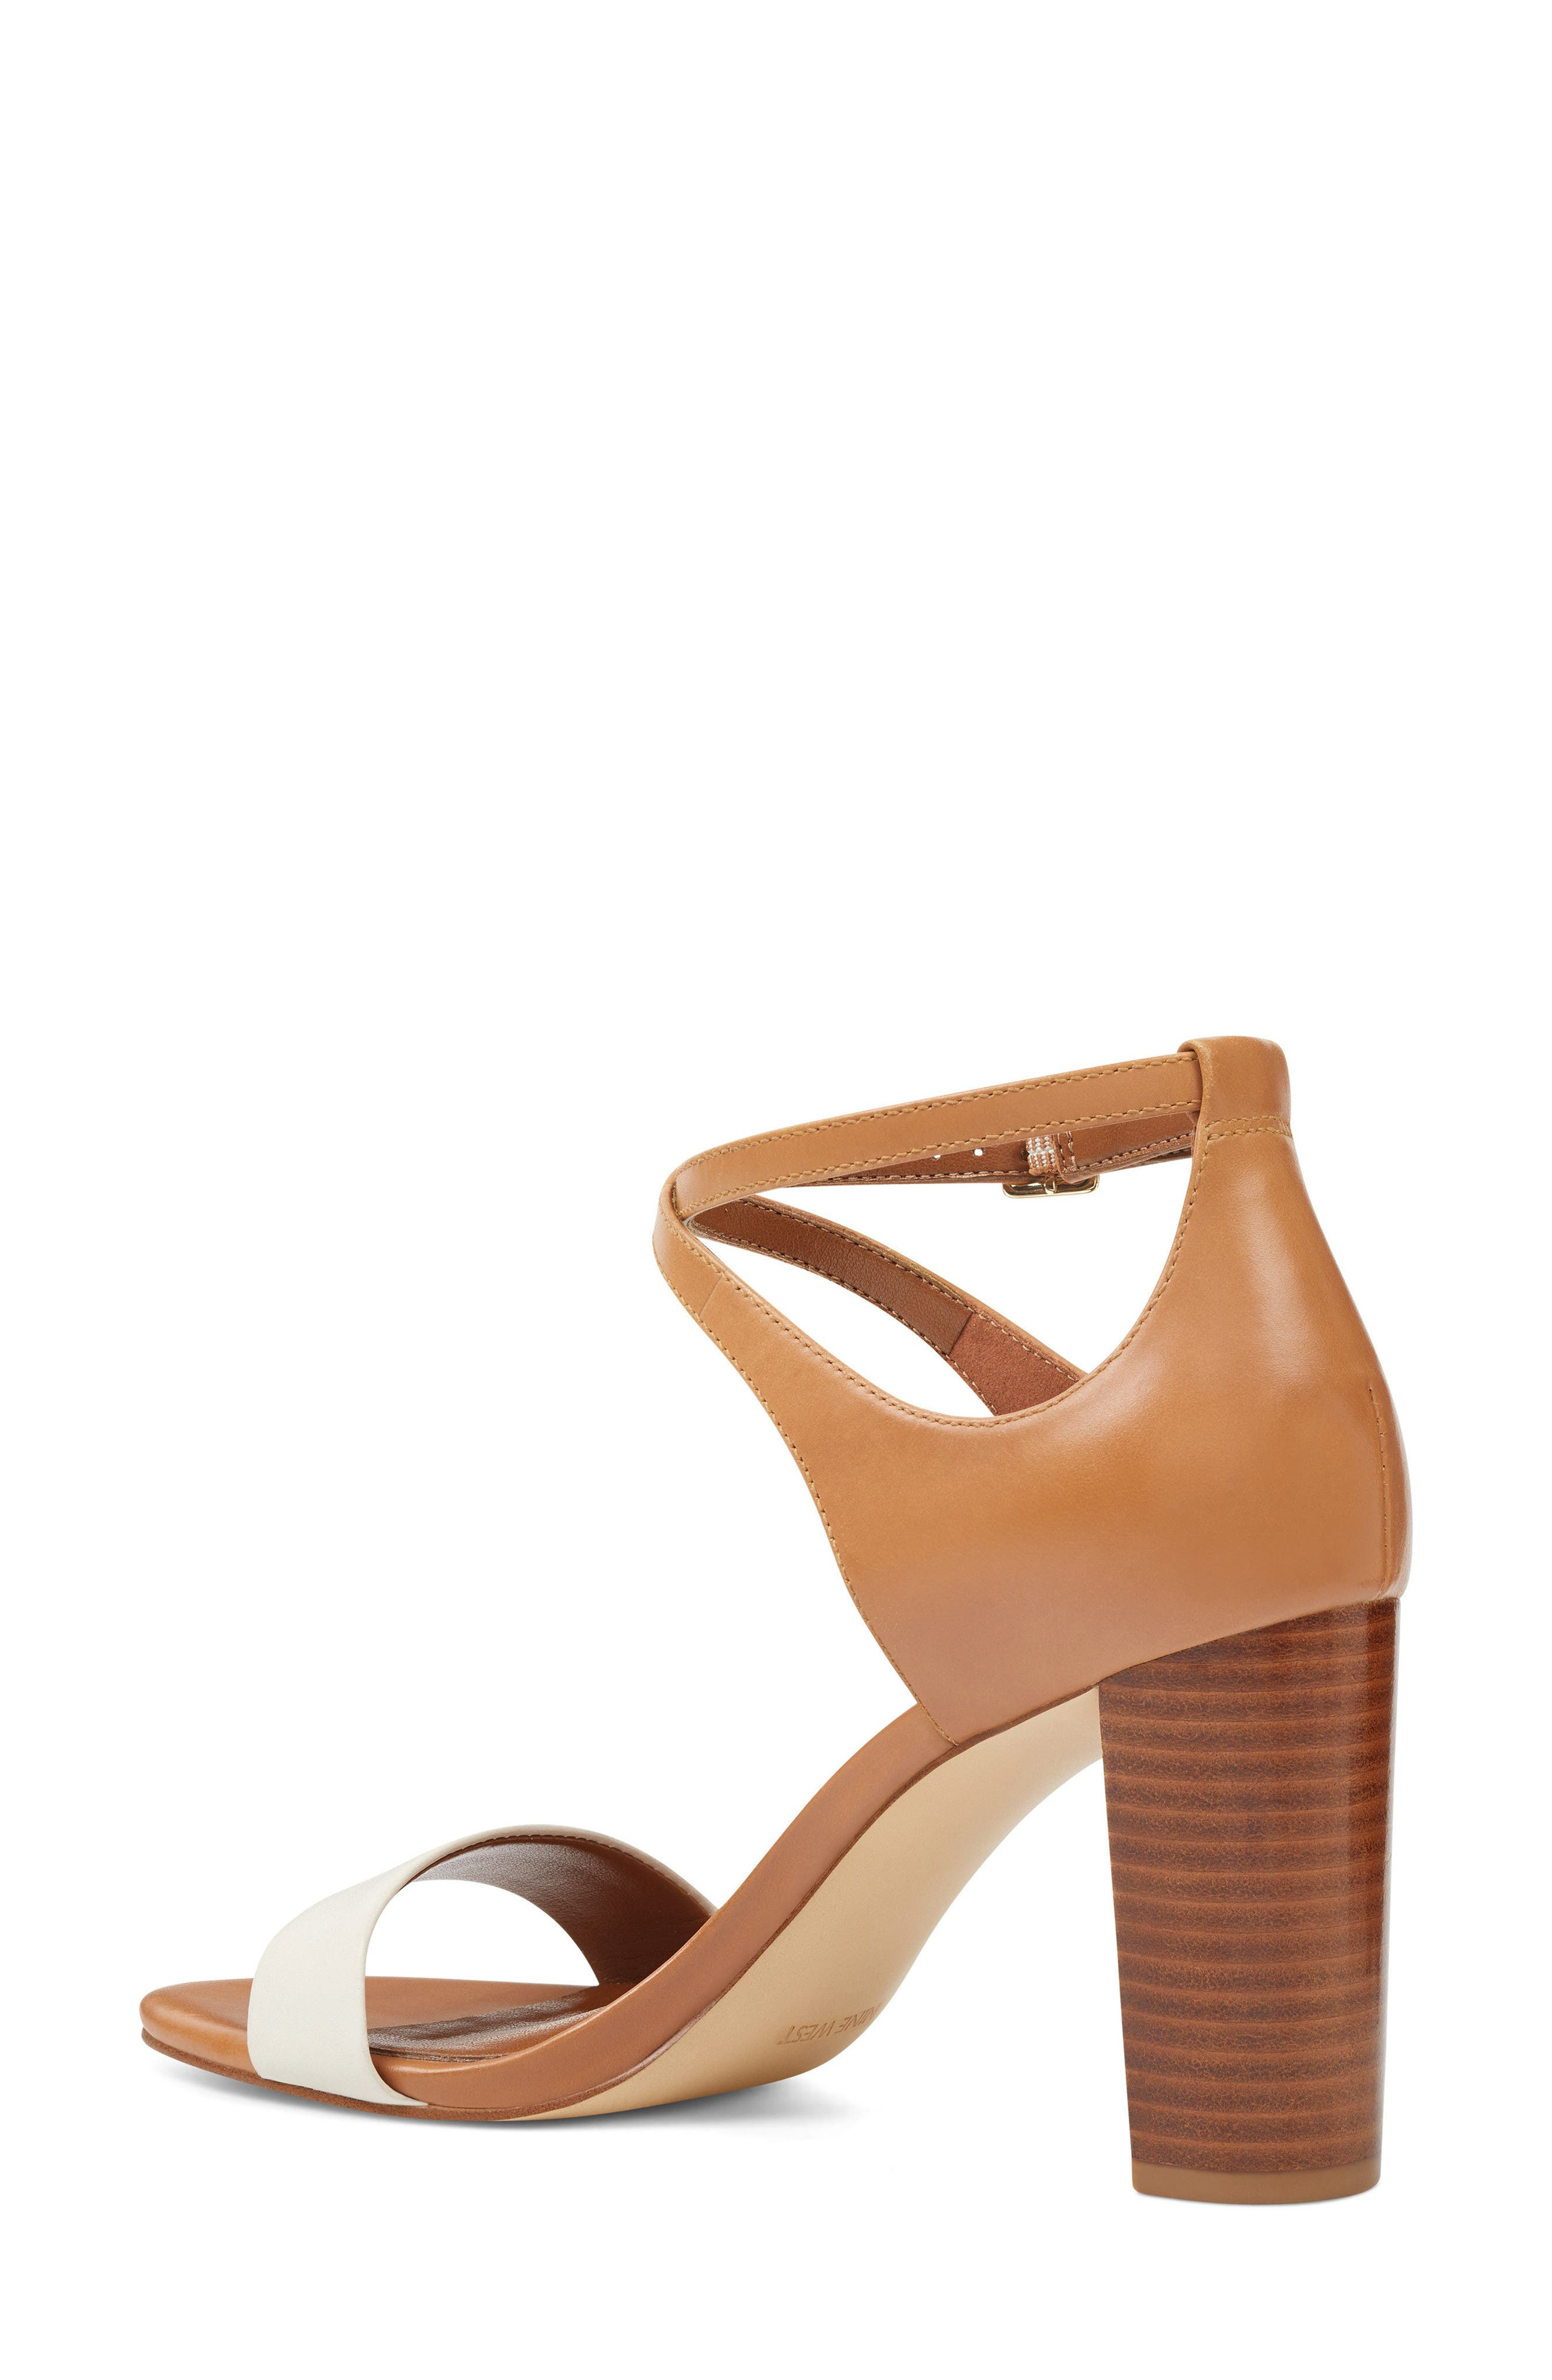 Nunzaya Ankle Strap Sandal,                             Alternate thumbnail 2, color,                             OFF WHITE/ NATURAL LEATHER